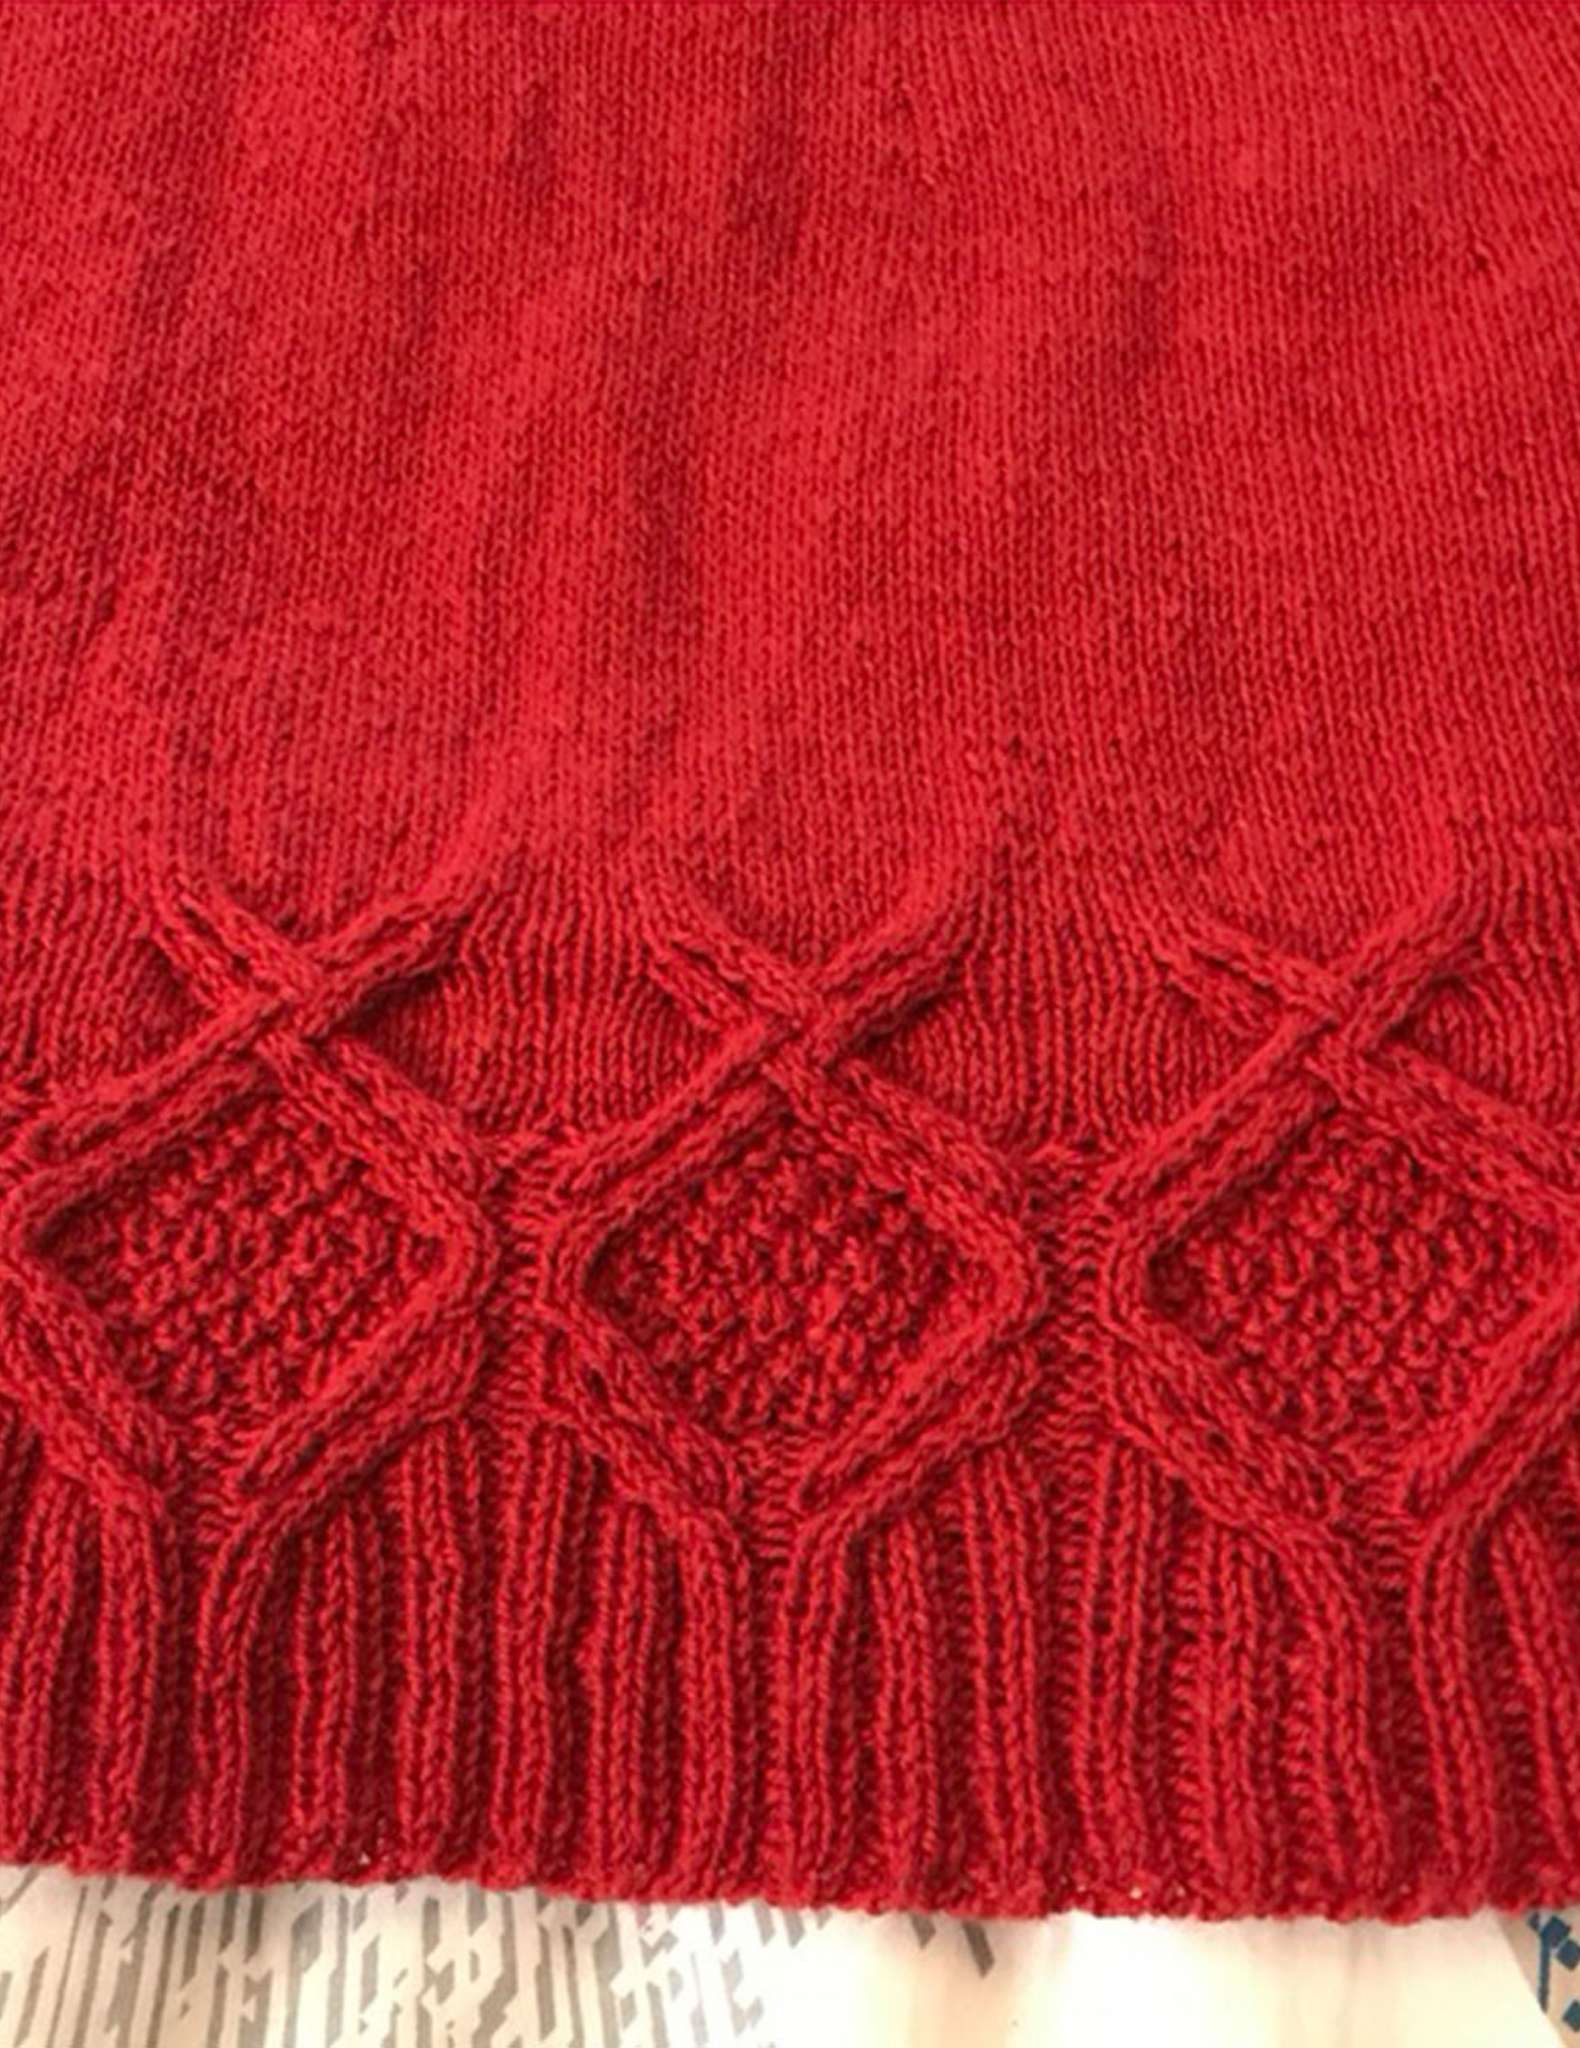 close of cabled hem detail on a red sweater laid flat